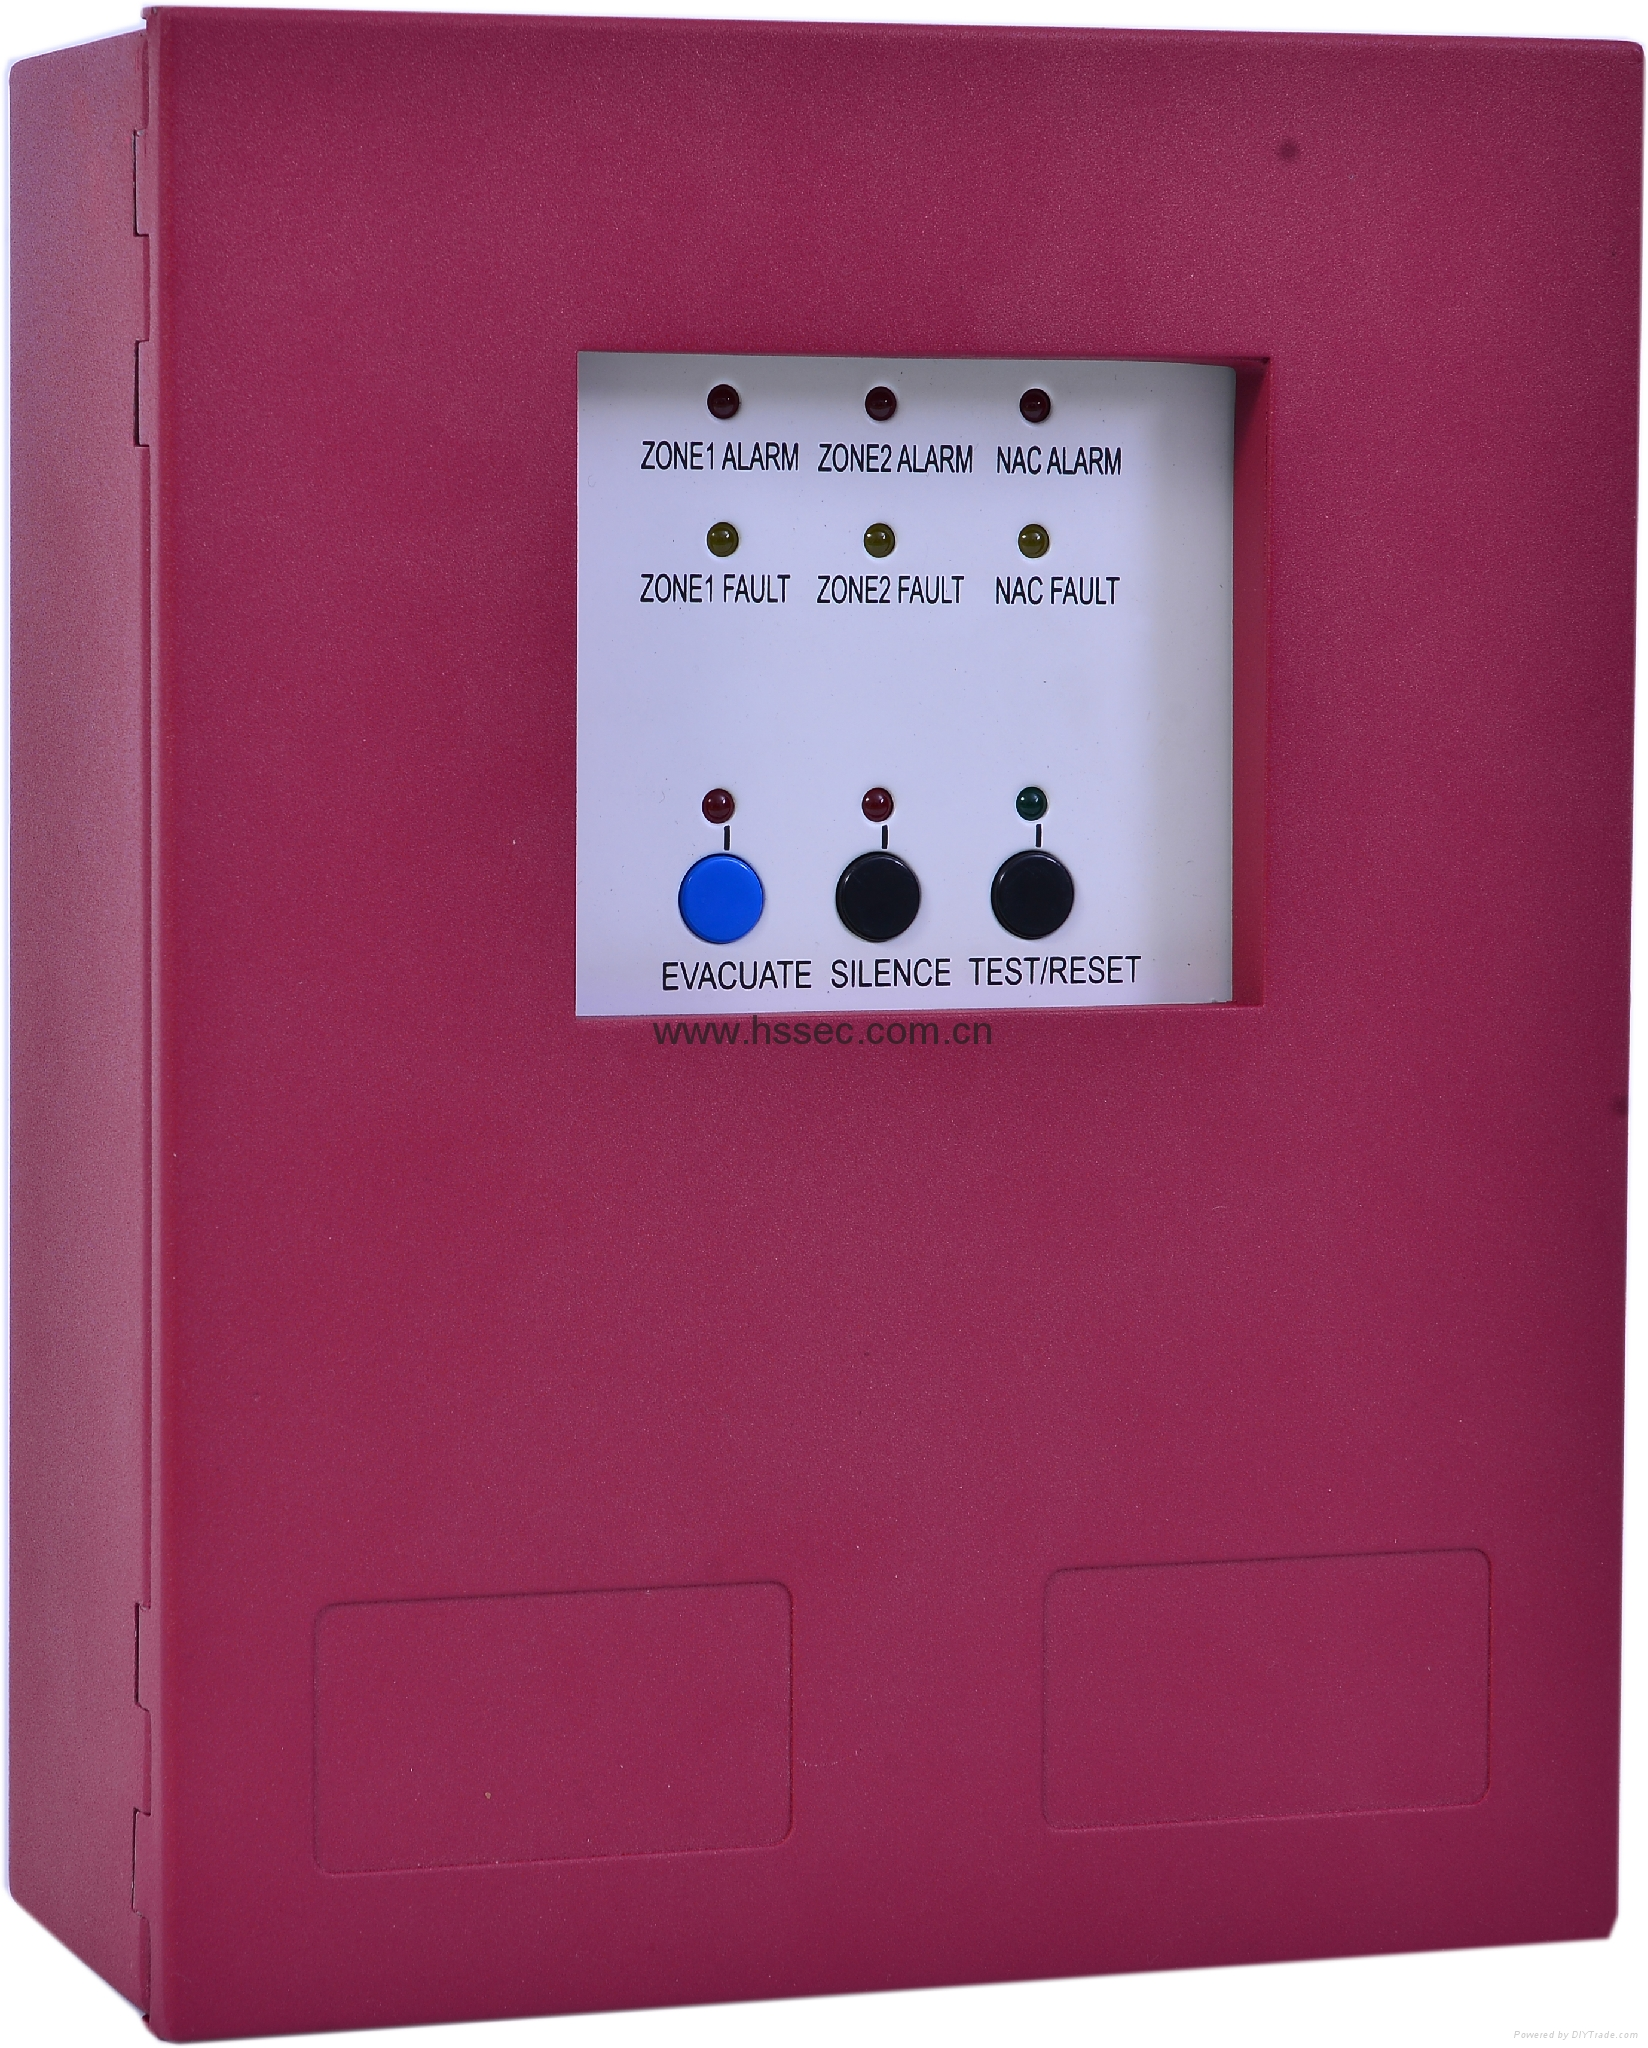 2 Zones fire alarm control panel HS-CK1002 with great pricing 1